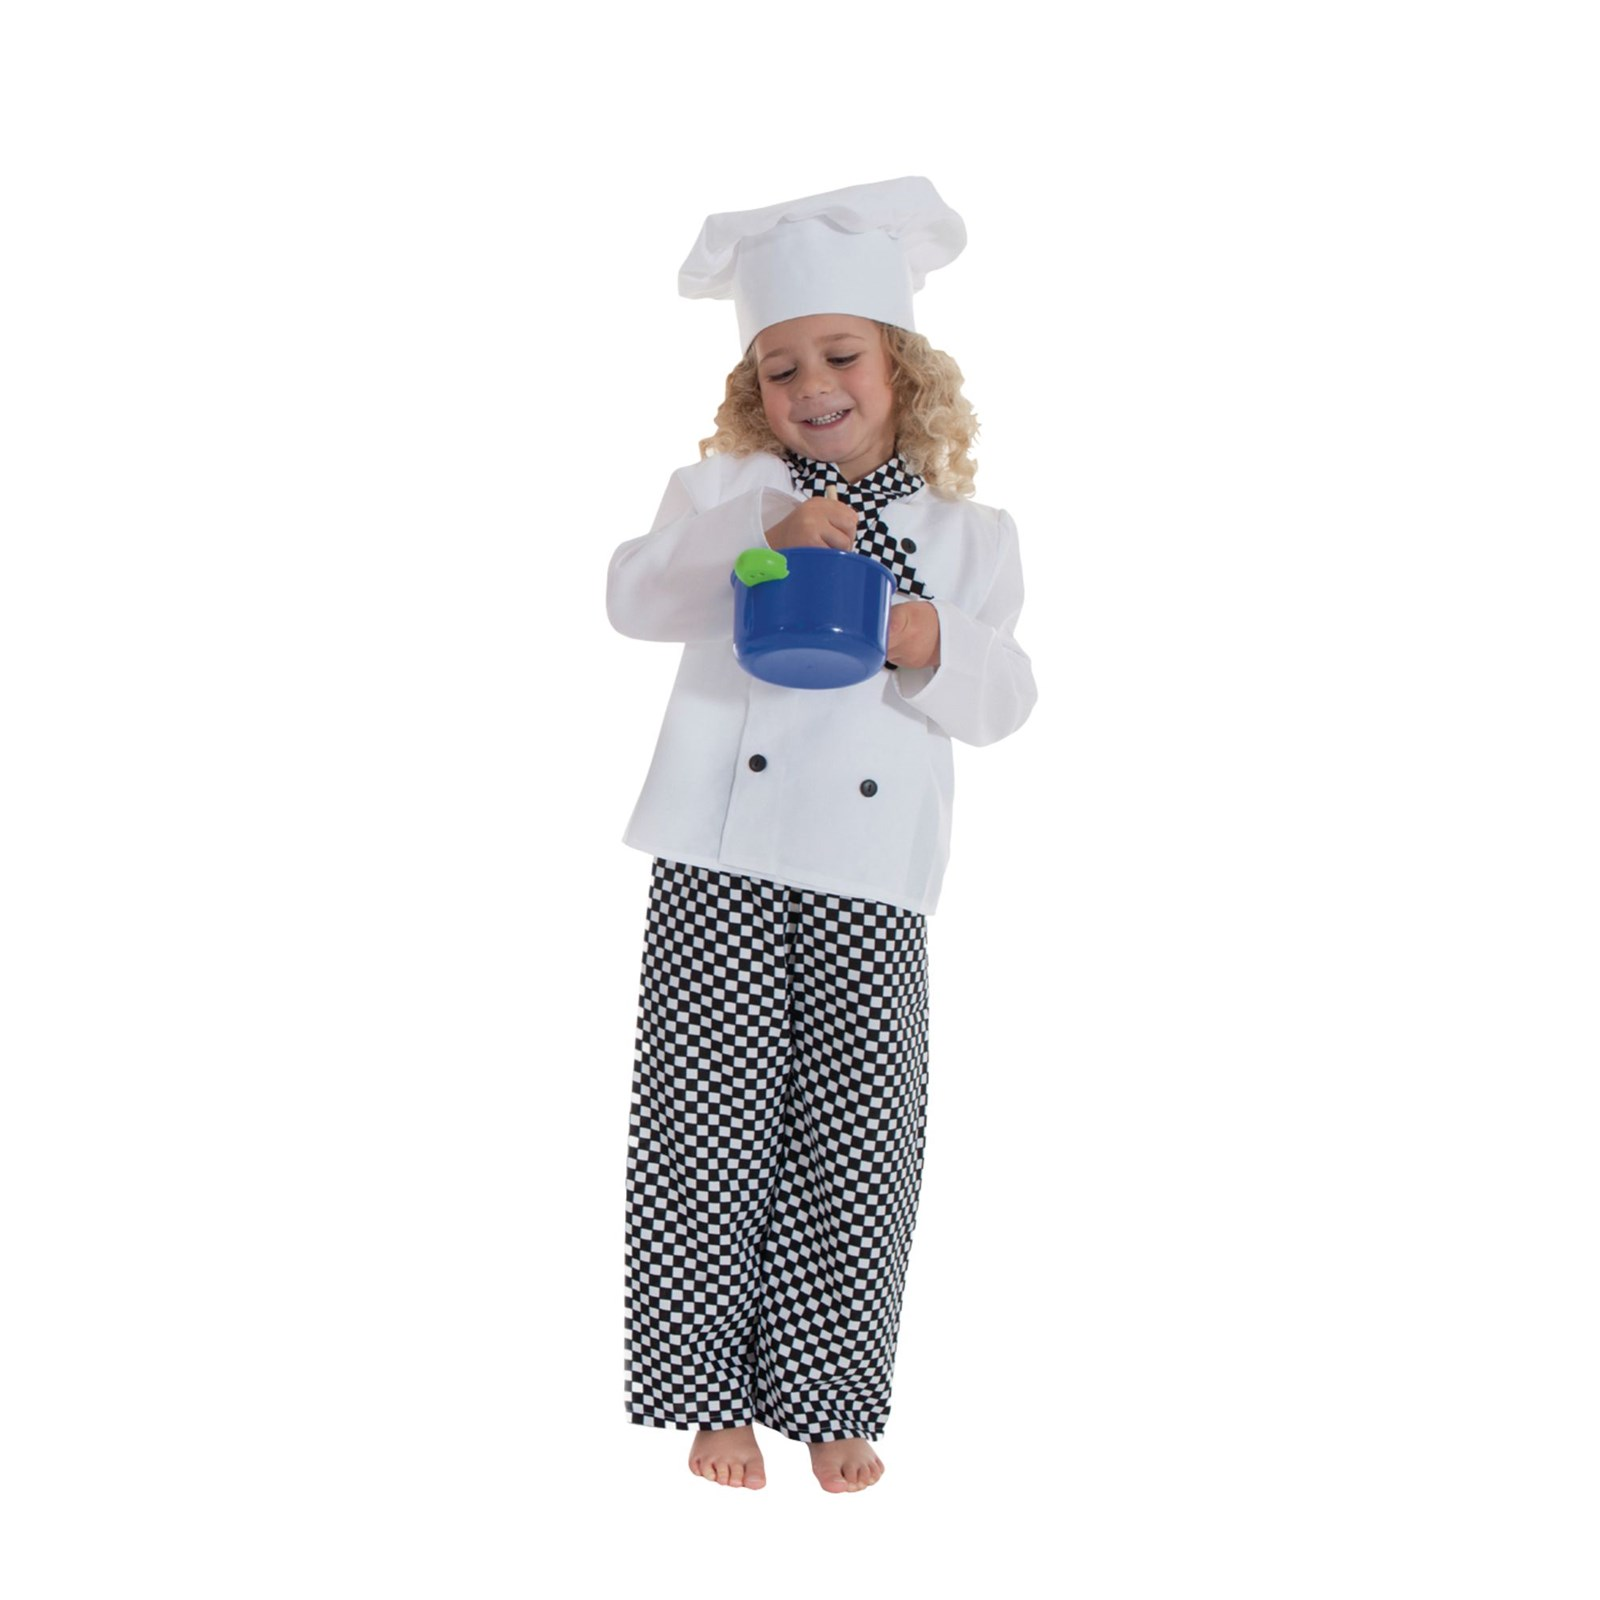 Chef's Outfit - 3-5 Years